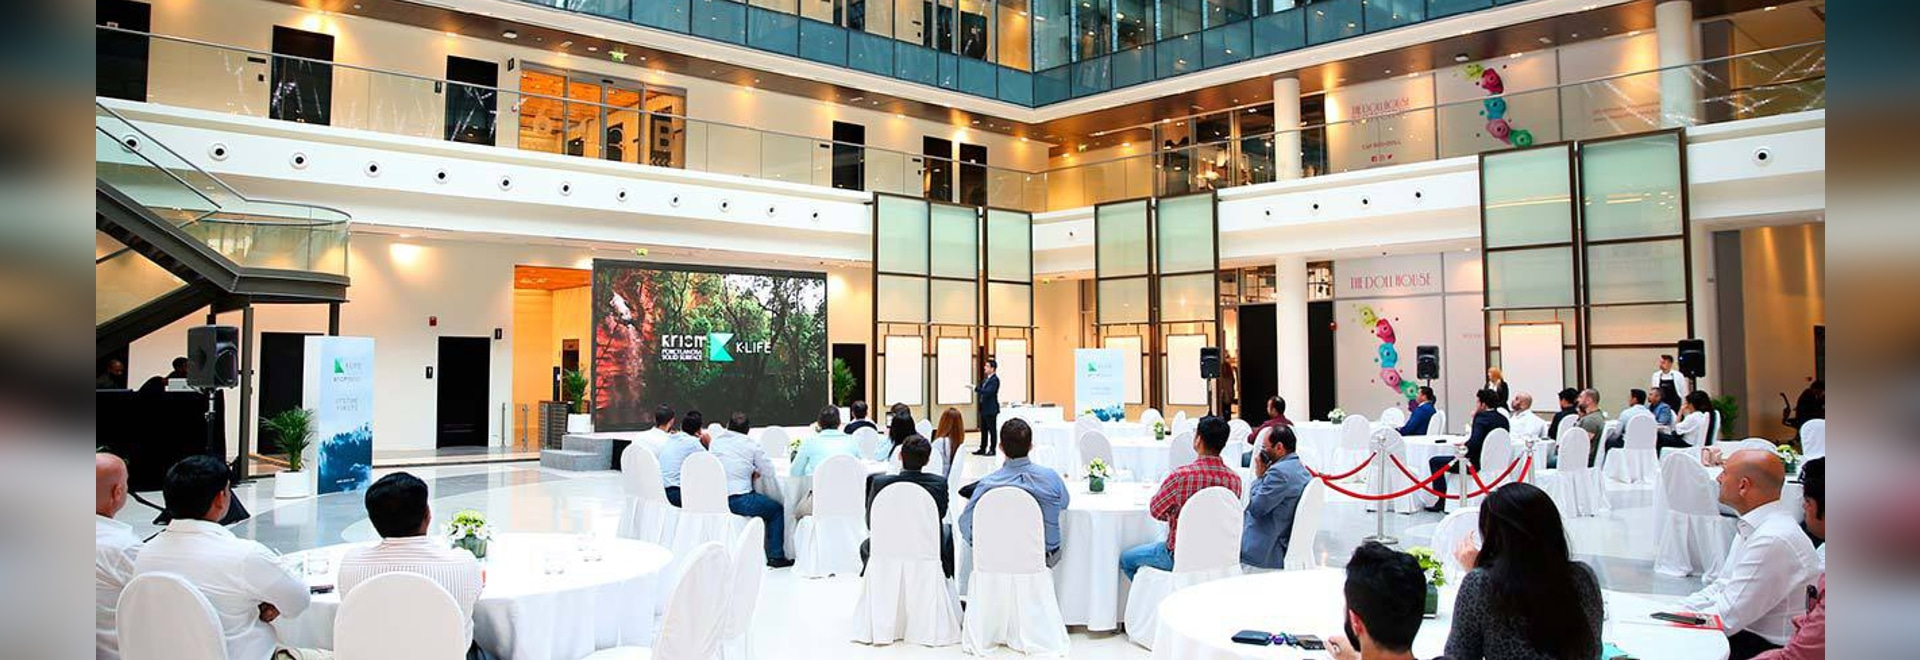 At Dubai Design District, Cloisall presents how to improve our quality of life with KRION K-LIFE and its photocatalysis